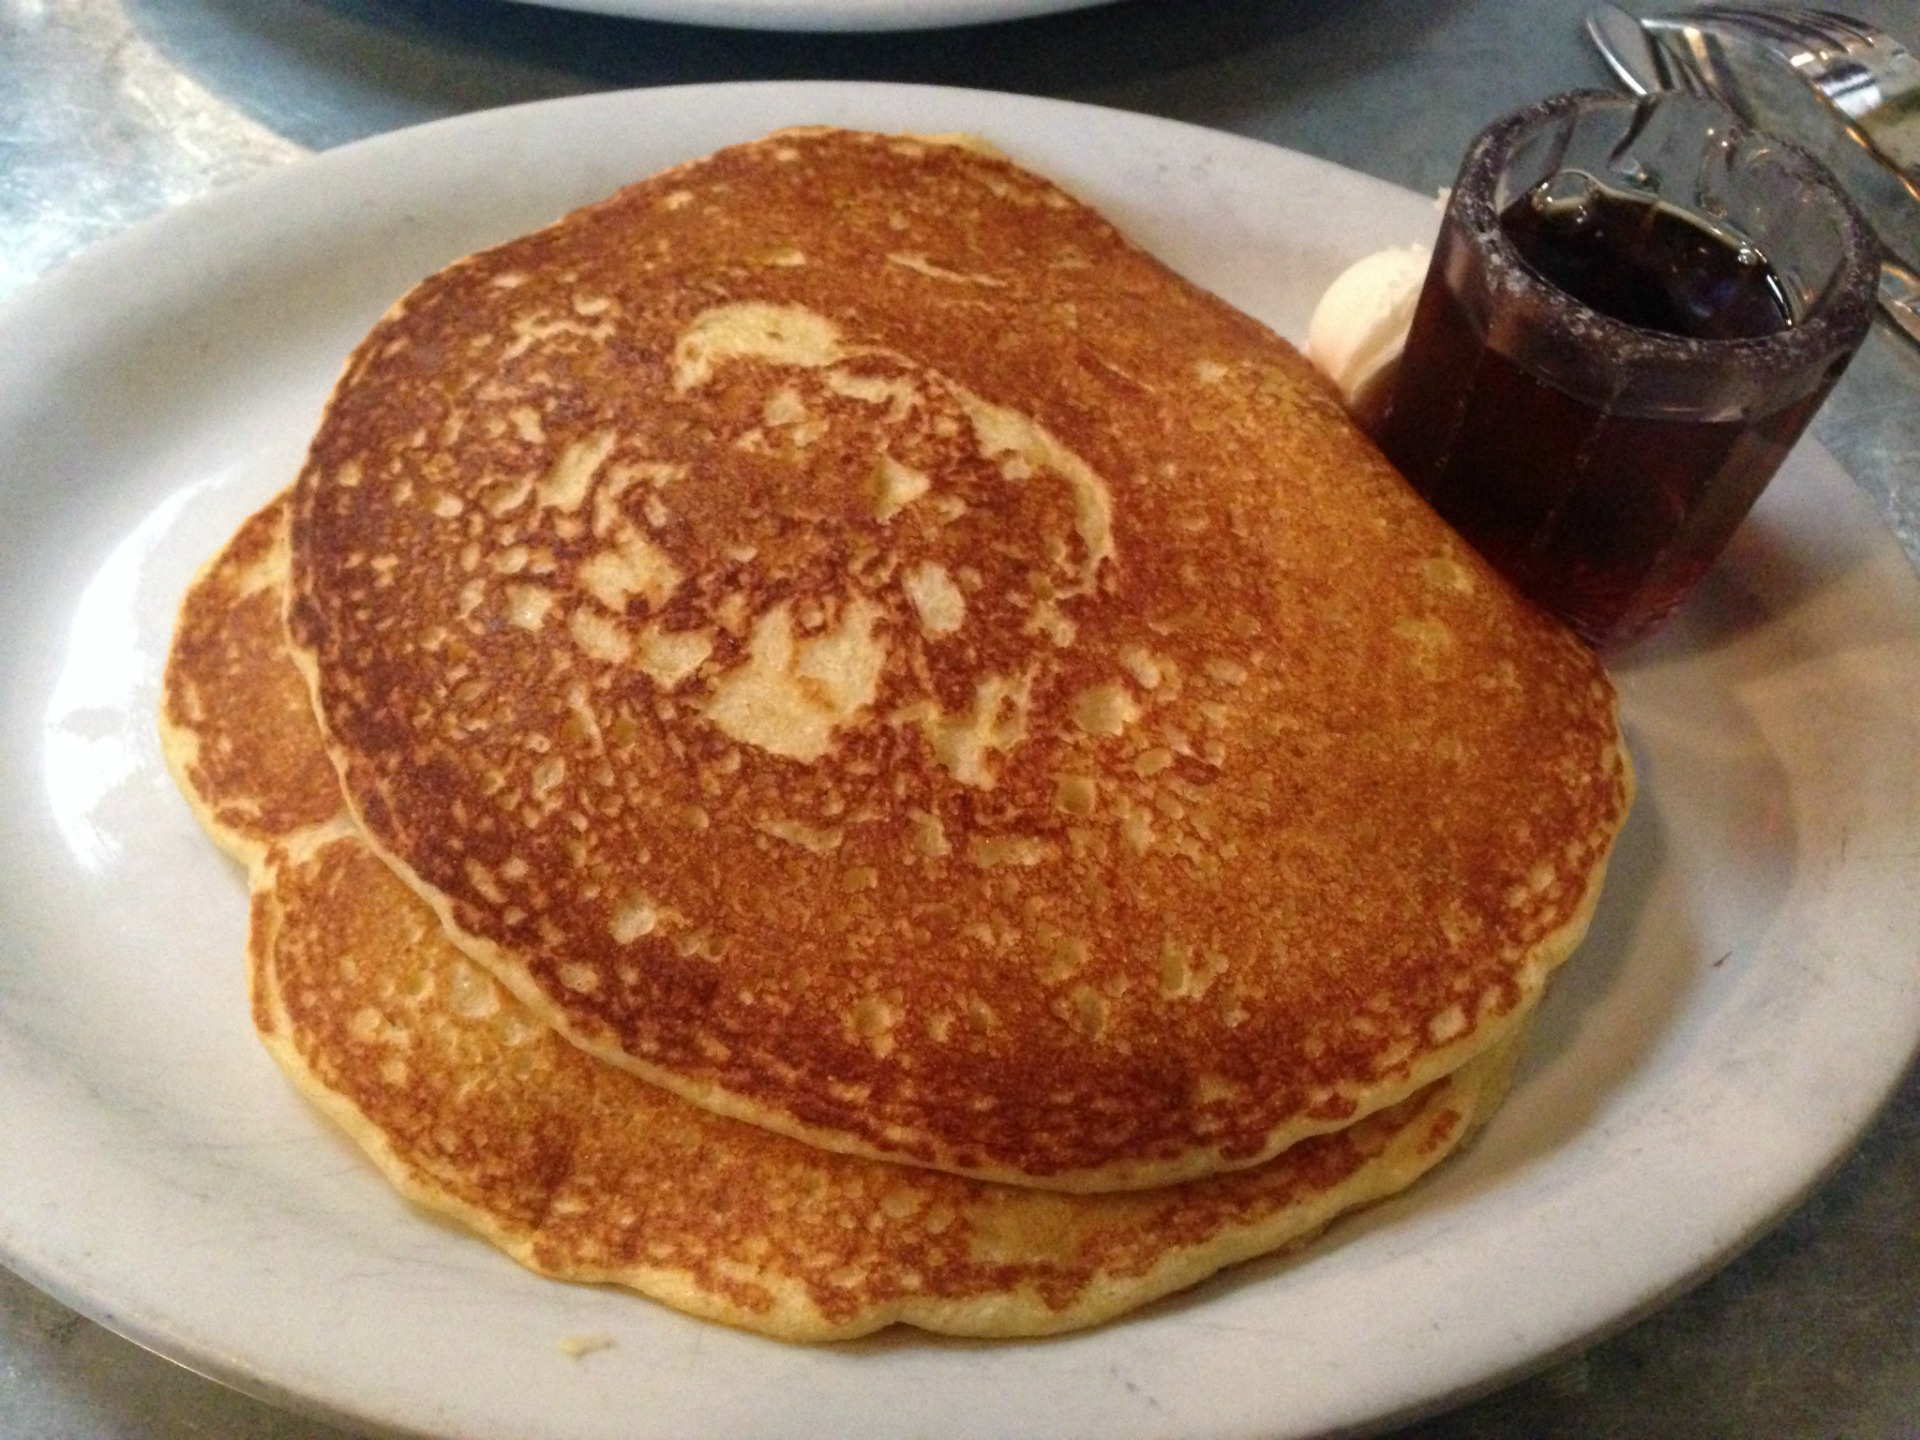 Cornmeal pancakes at Rick & Ann's Restaurant